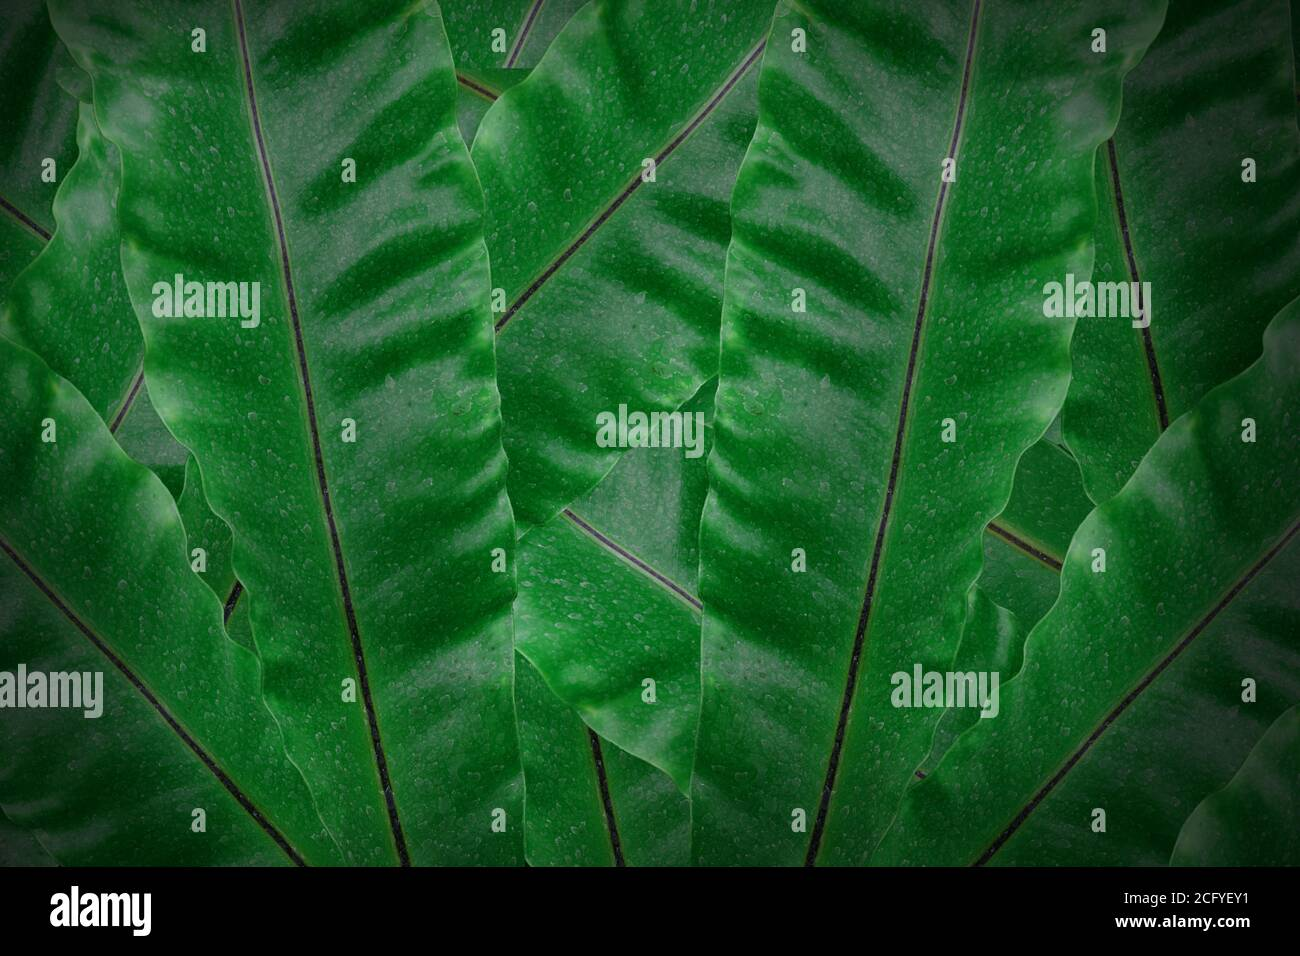 Tropical Green Leaves Background Dark Green Leaf Textured Concept Nature For Design Or Wallpaper Stock Photo Alamy Rainforest tropical green leaves wallpaper wall murals, tropical palm leaves green tropical plants wall murals wallpaper for home decor. https www alamy com tropical green leaves background dark green leaf textured concept nature for design or wallpaper image371242005 html